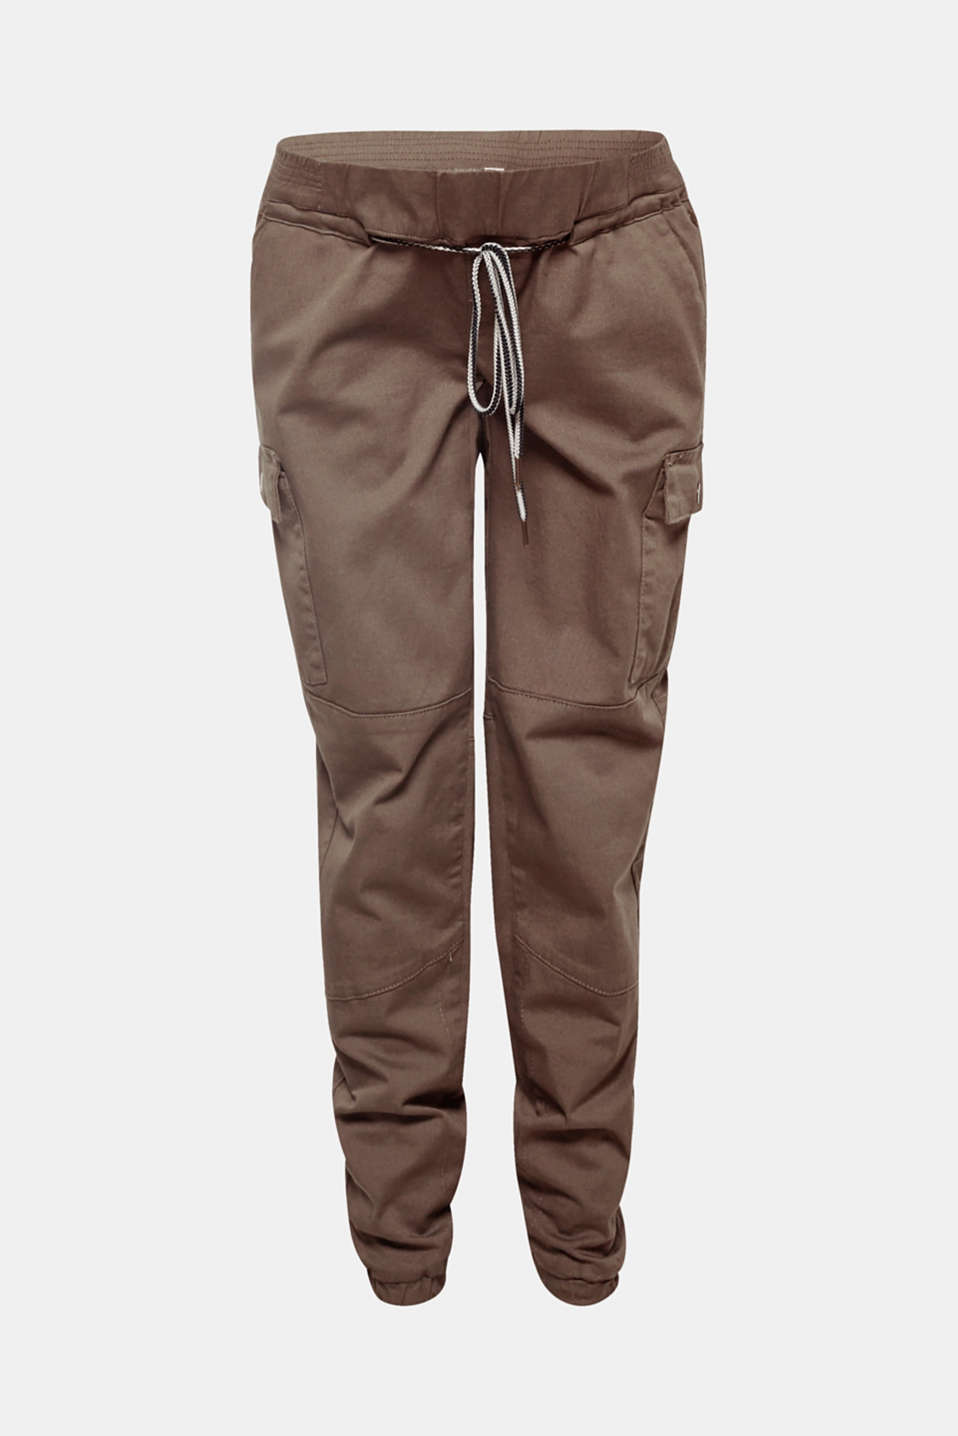 These grainy, slightly cropped cargo trousers in stretch cotton are ultra casual with patch pockets on the sides, elasticated hems and a supportive under-bump waistband!